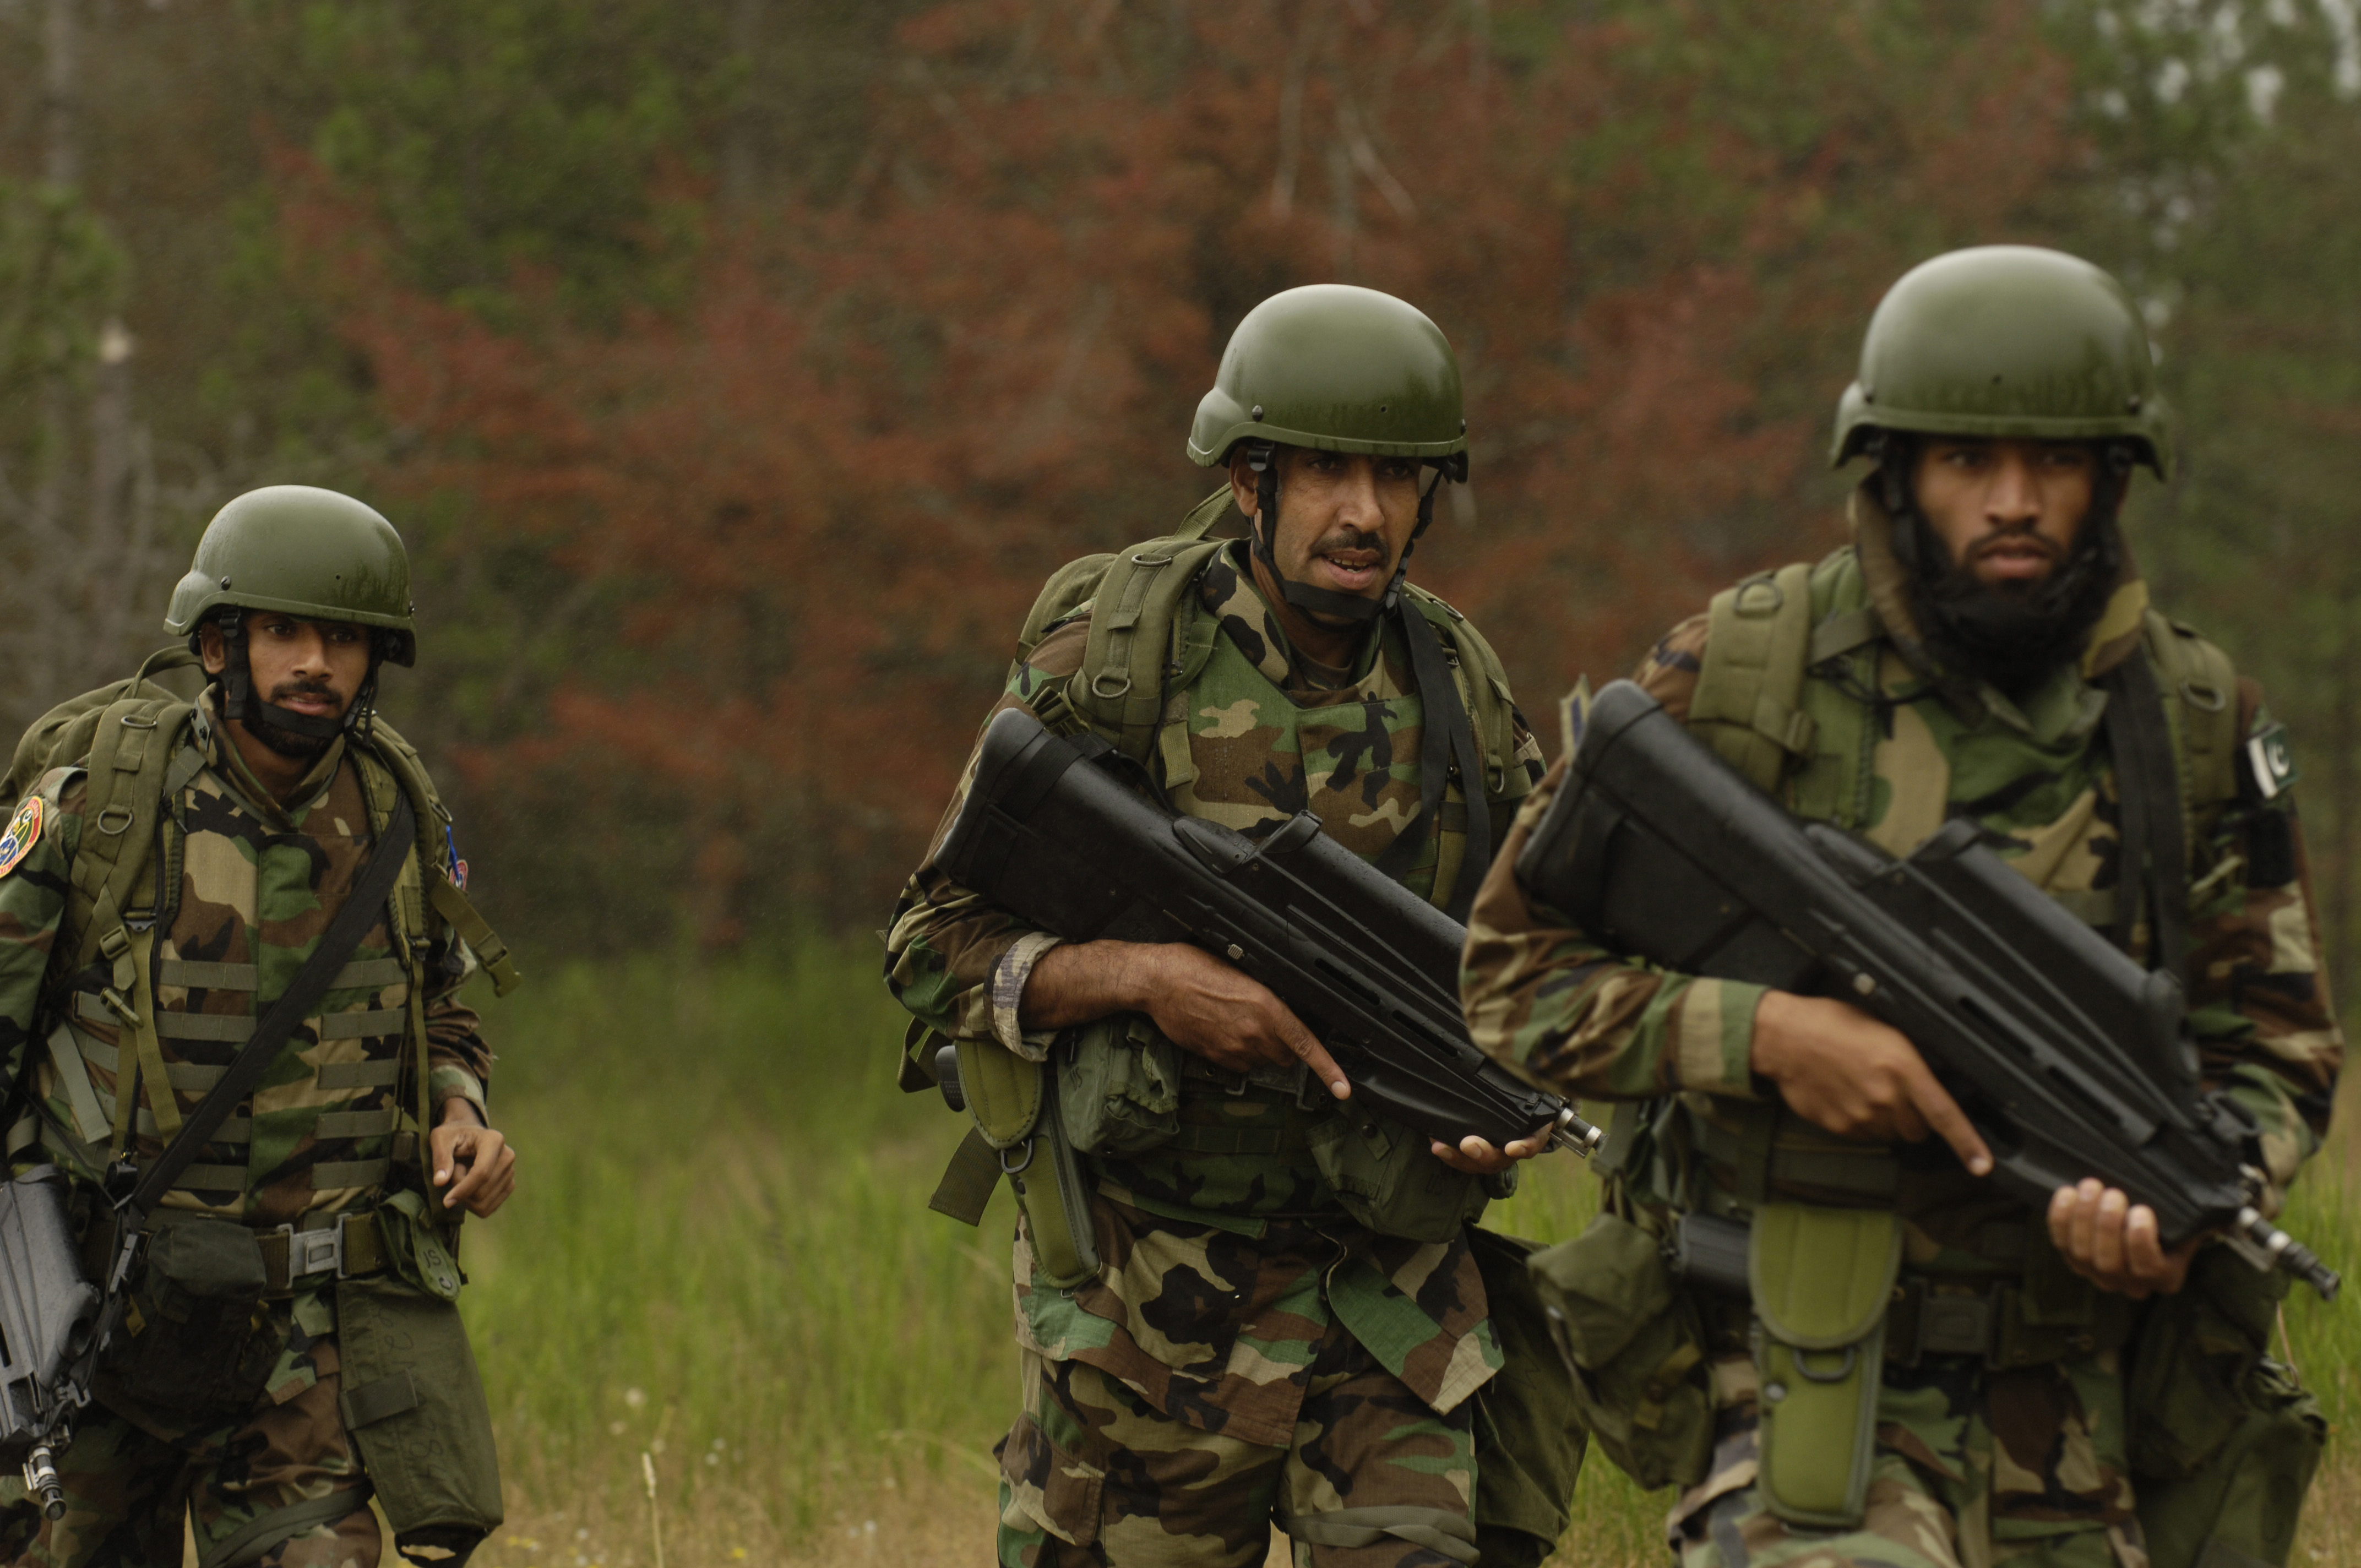 Pakistani Special Services Wing carrying FN F2000 rifles while on training at Fort Lewis, 23 July 2007.